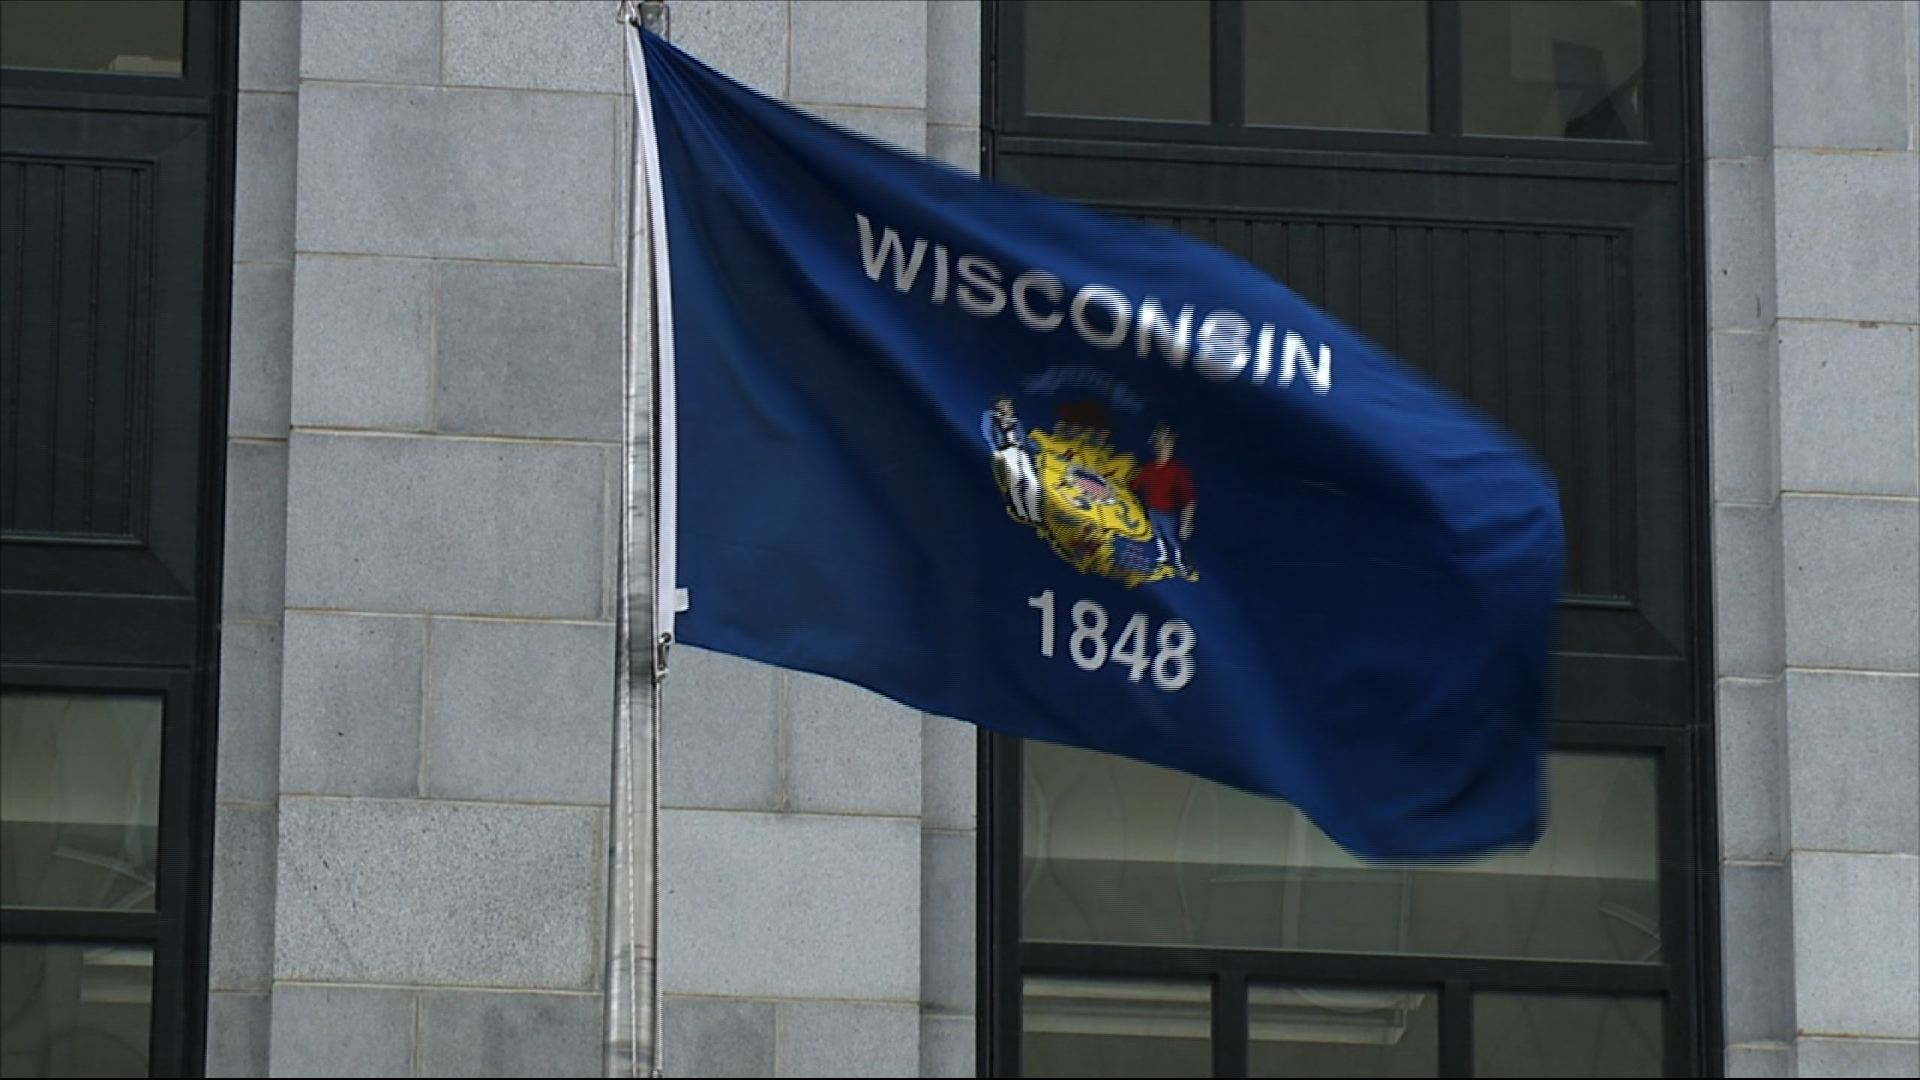 Infection Linked to 18 Deaths in Wisconsin